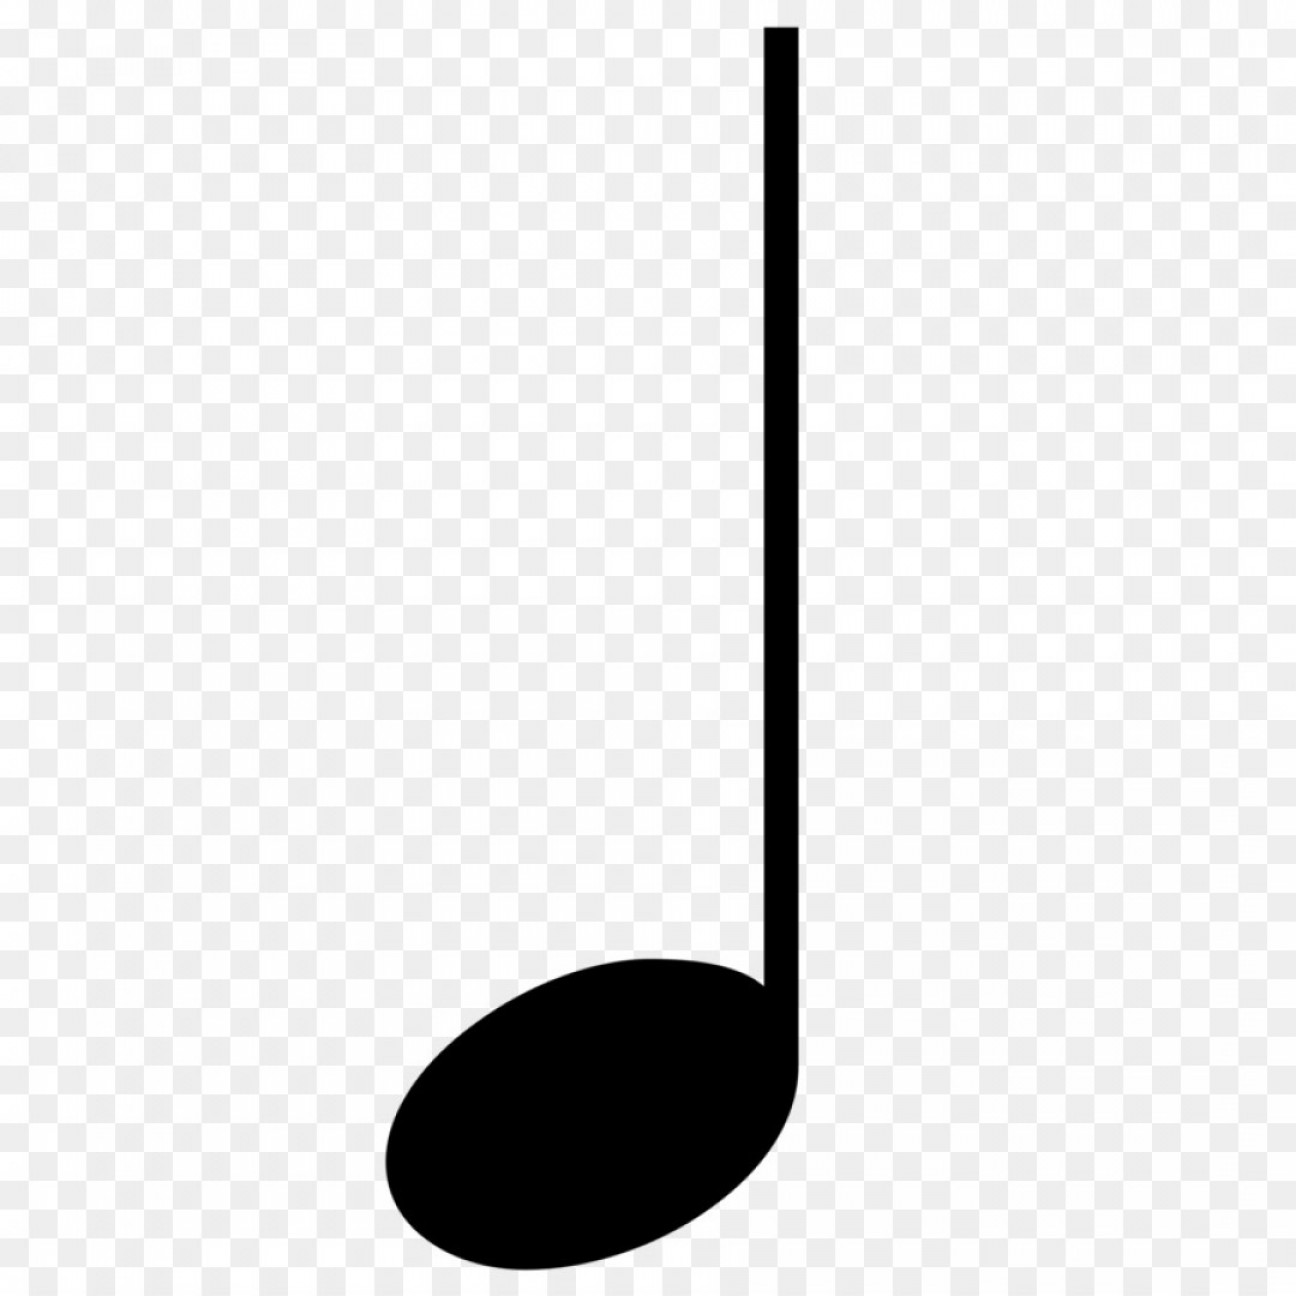 Eighth Note Vector: Png Quarter Note Musical Note Eighth Note Rest Music N